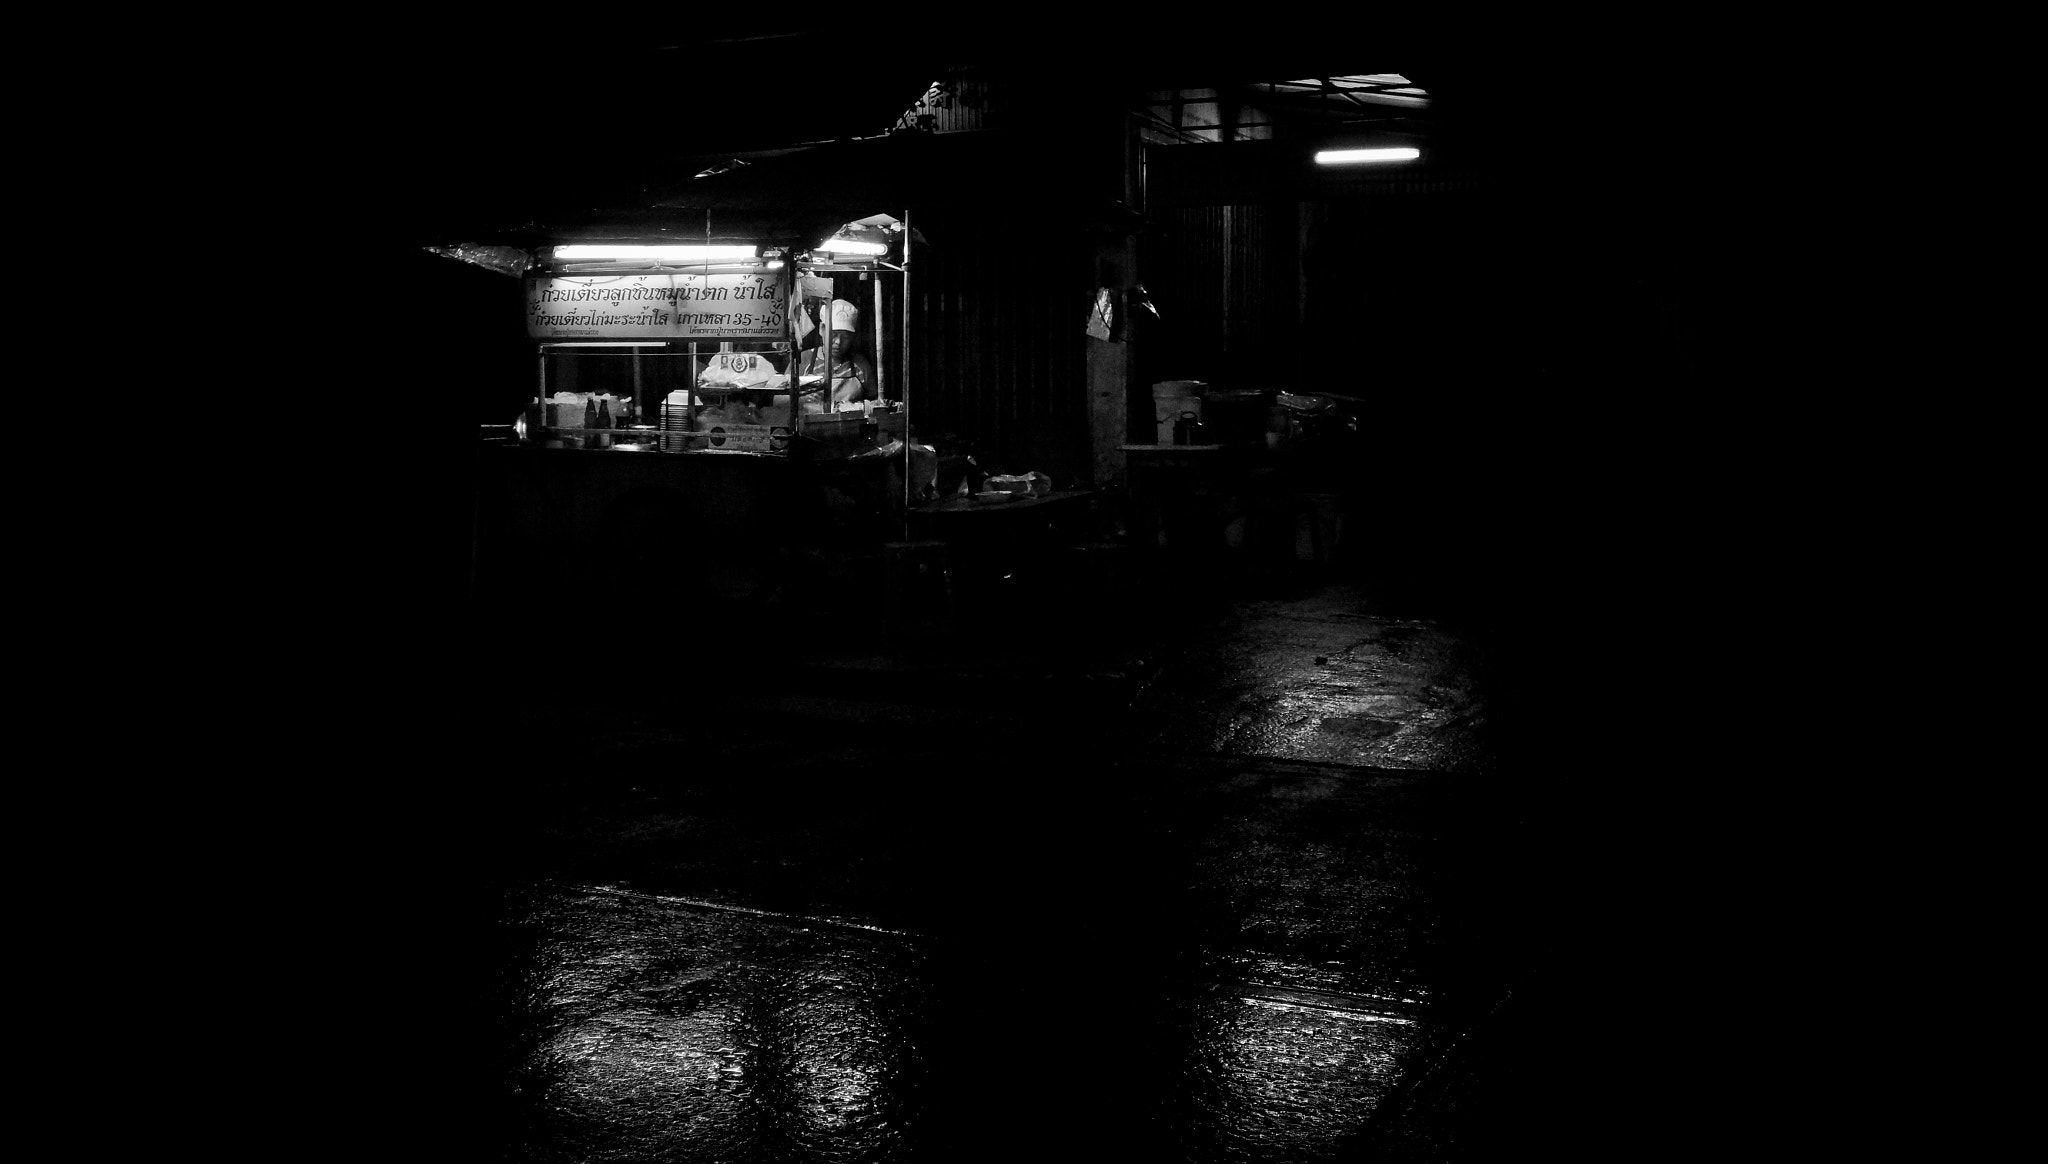 Photograph Dark and Rain by Black to White on 500px